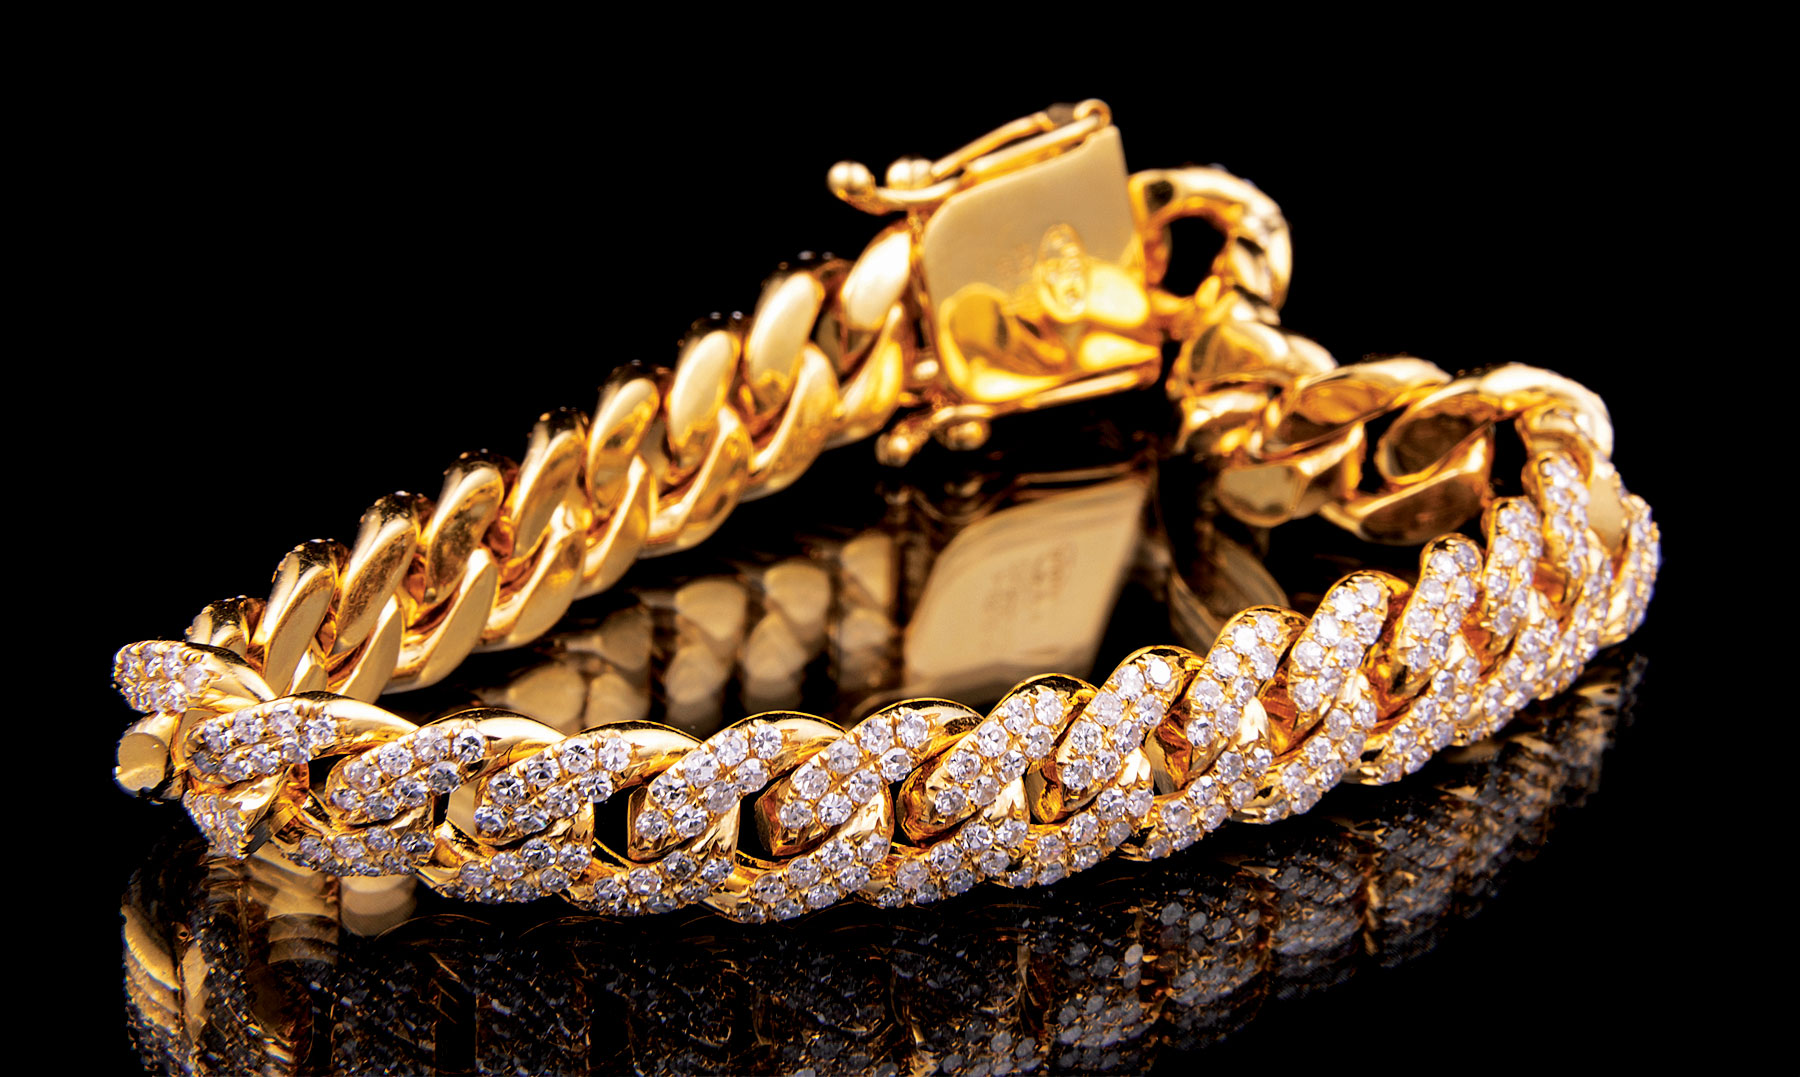 Lot 573 - 14 kt. Yellow Gold and Diamond Curb Chain Bracelet , diamond total wt. approx. 5.90 cts., l. 7 1/2